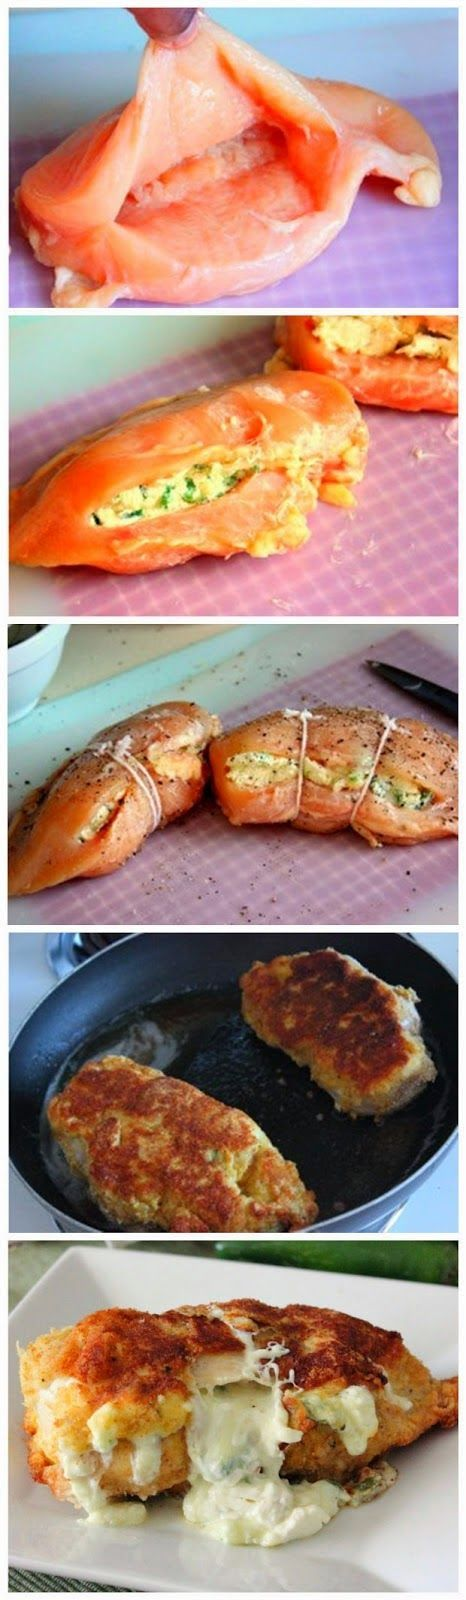 Jalapeño Popper Stuffed Chicken Breast. Pin for even more great jalapeño recipes!